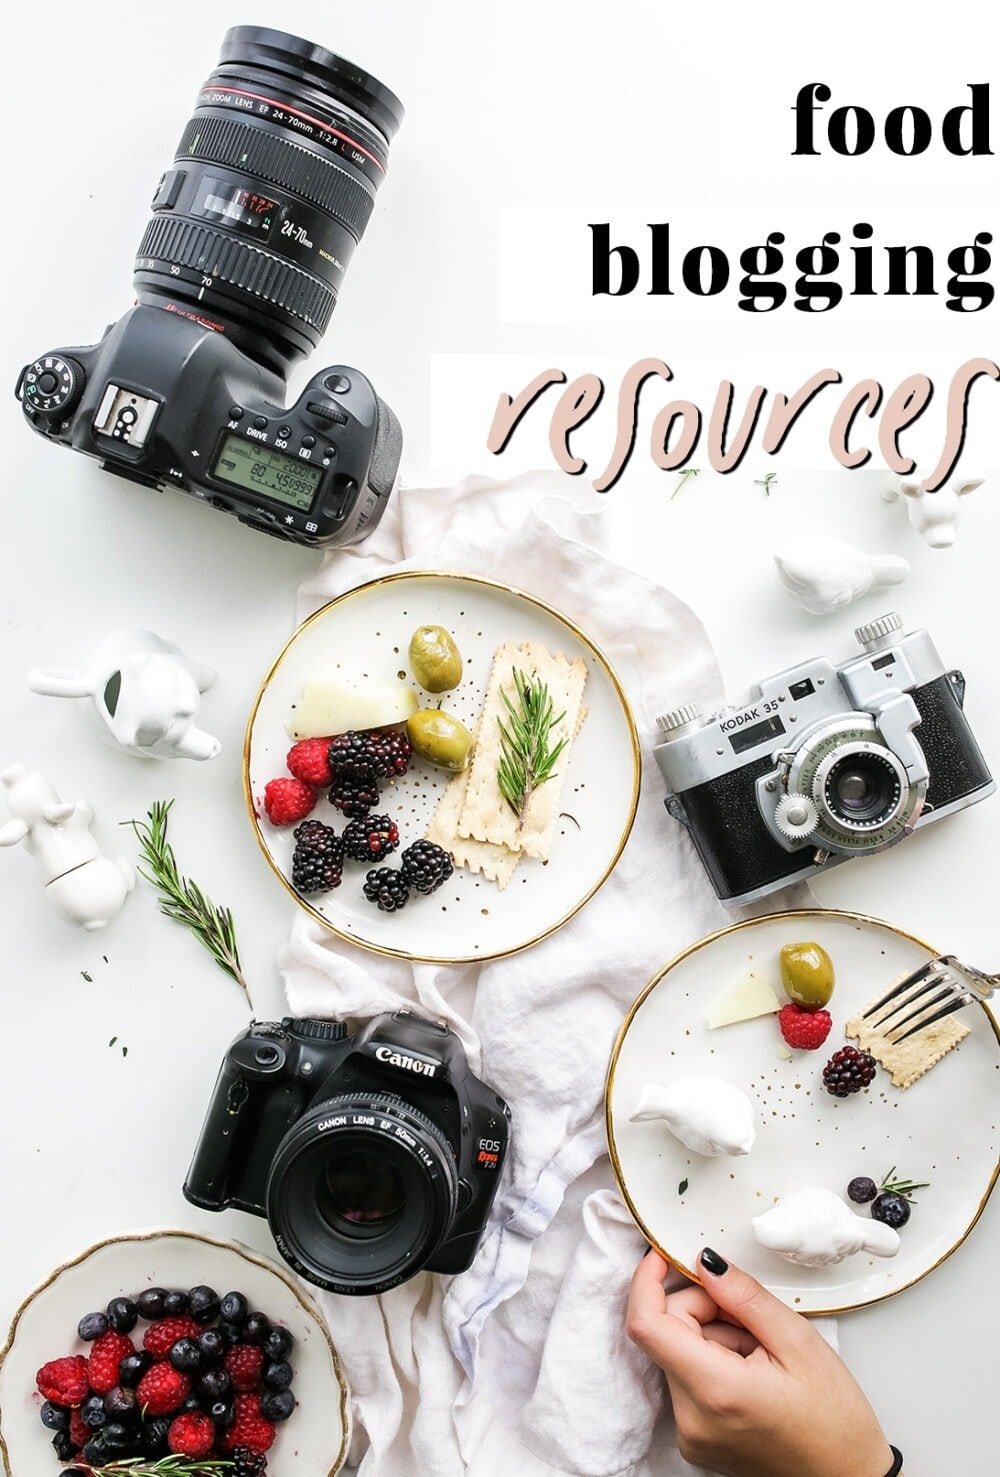 Graphic for food blogging resources